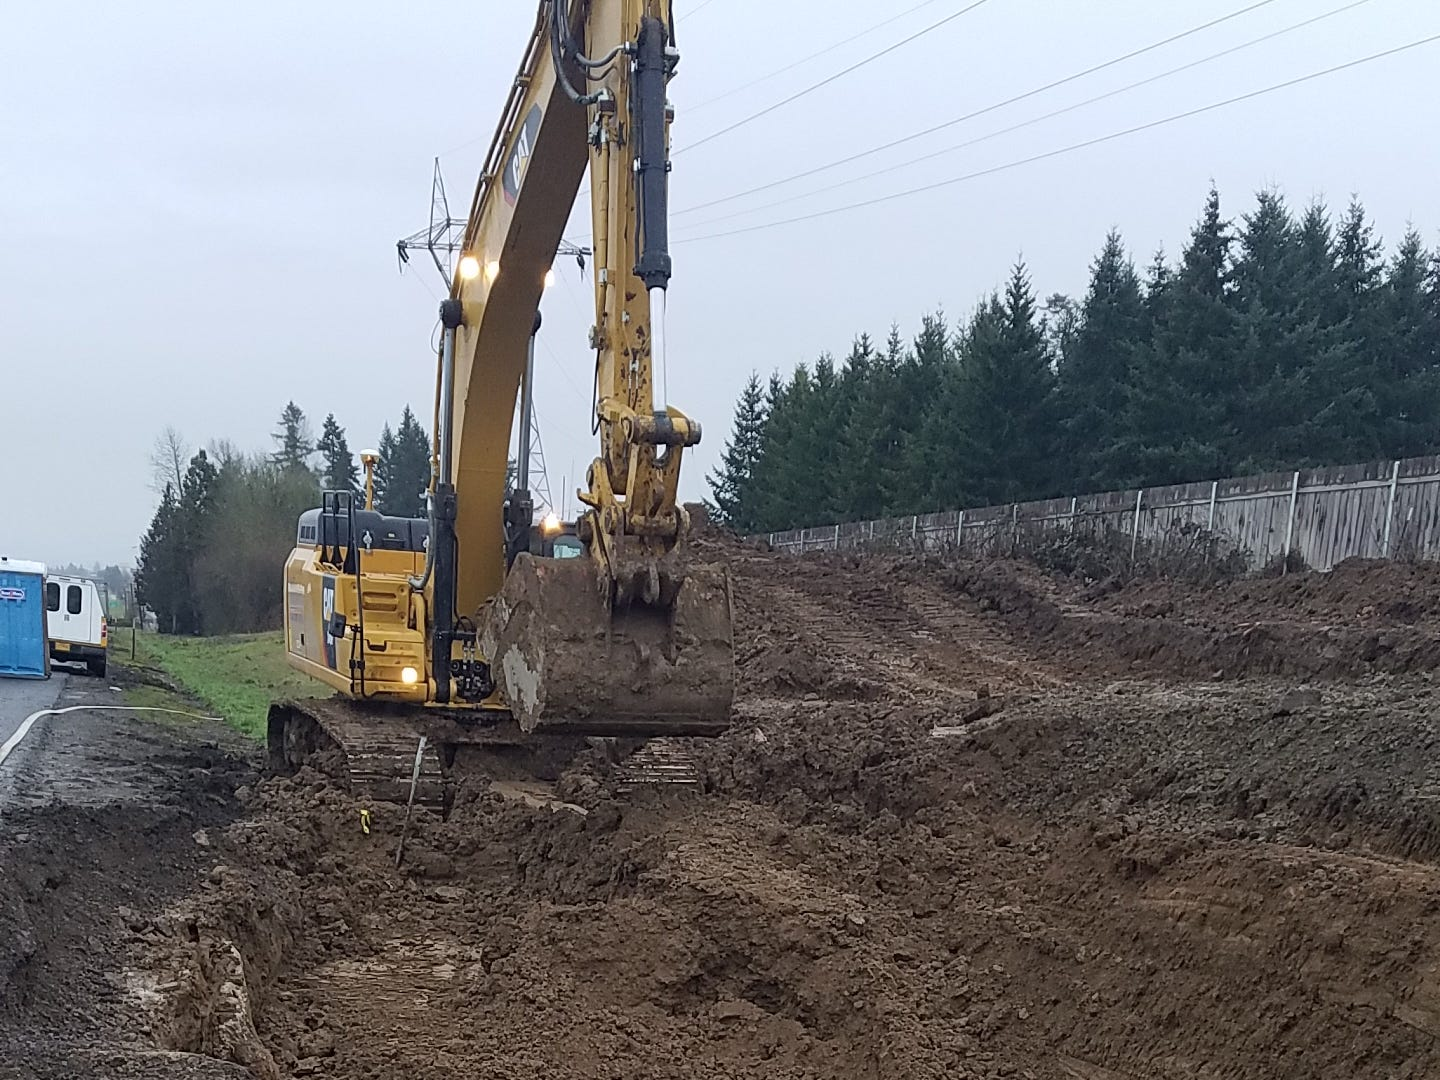 Contaminated soil is cleared from the site of a tanker truck crash along southbound I-5 near Keizer on Feb. 14, 2019.